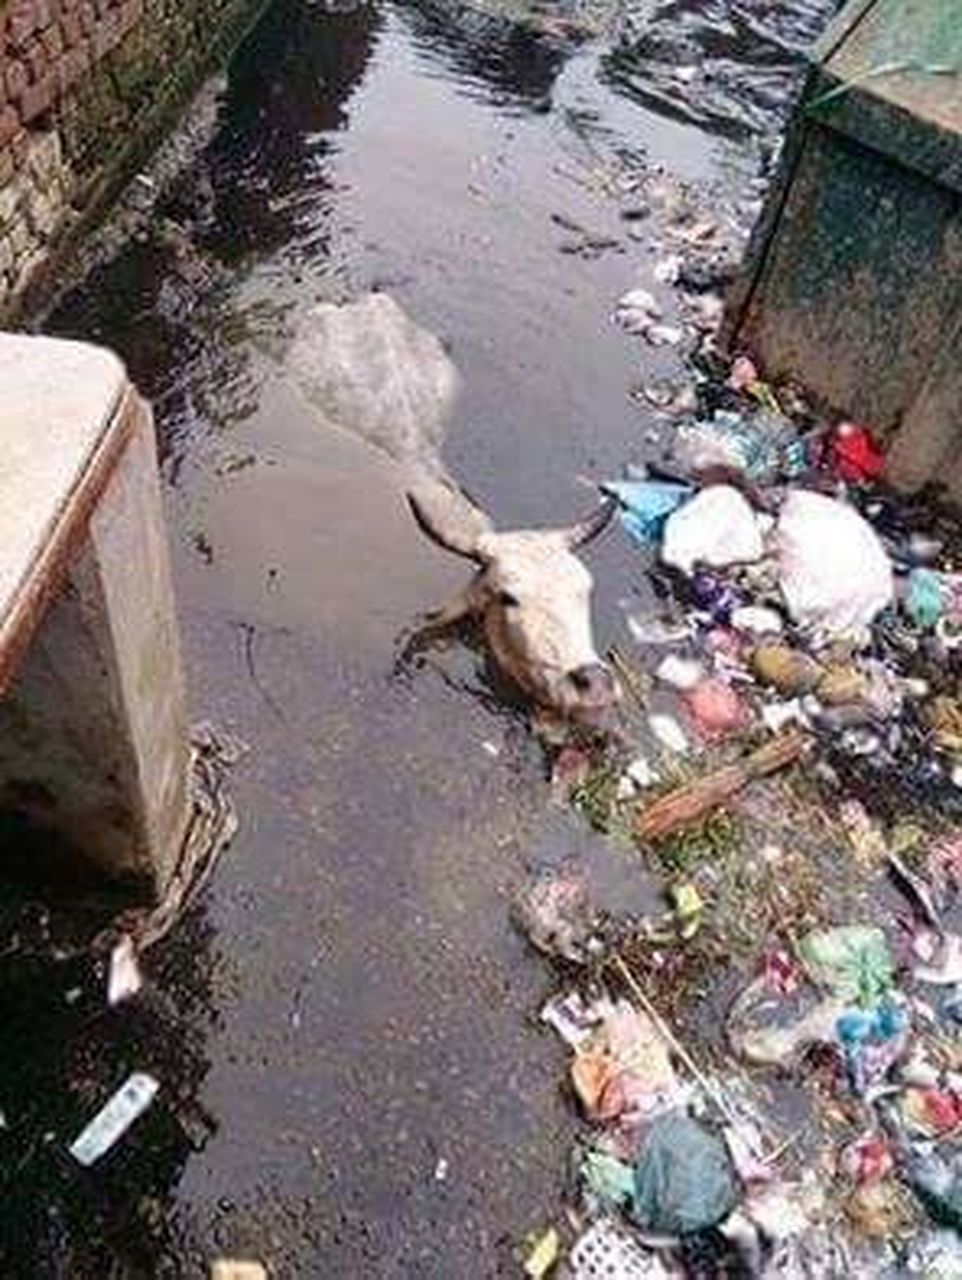 garbage, water pollution, pollution, water, day, high angle view, unhygienic, no people, outdoors, sewage, puddle, oil spill